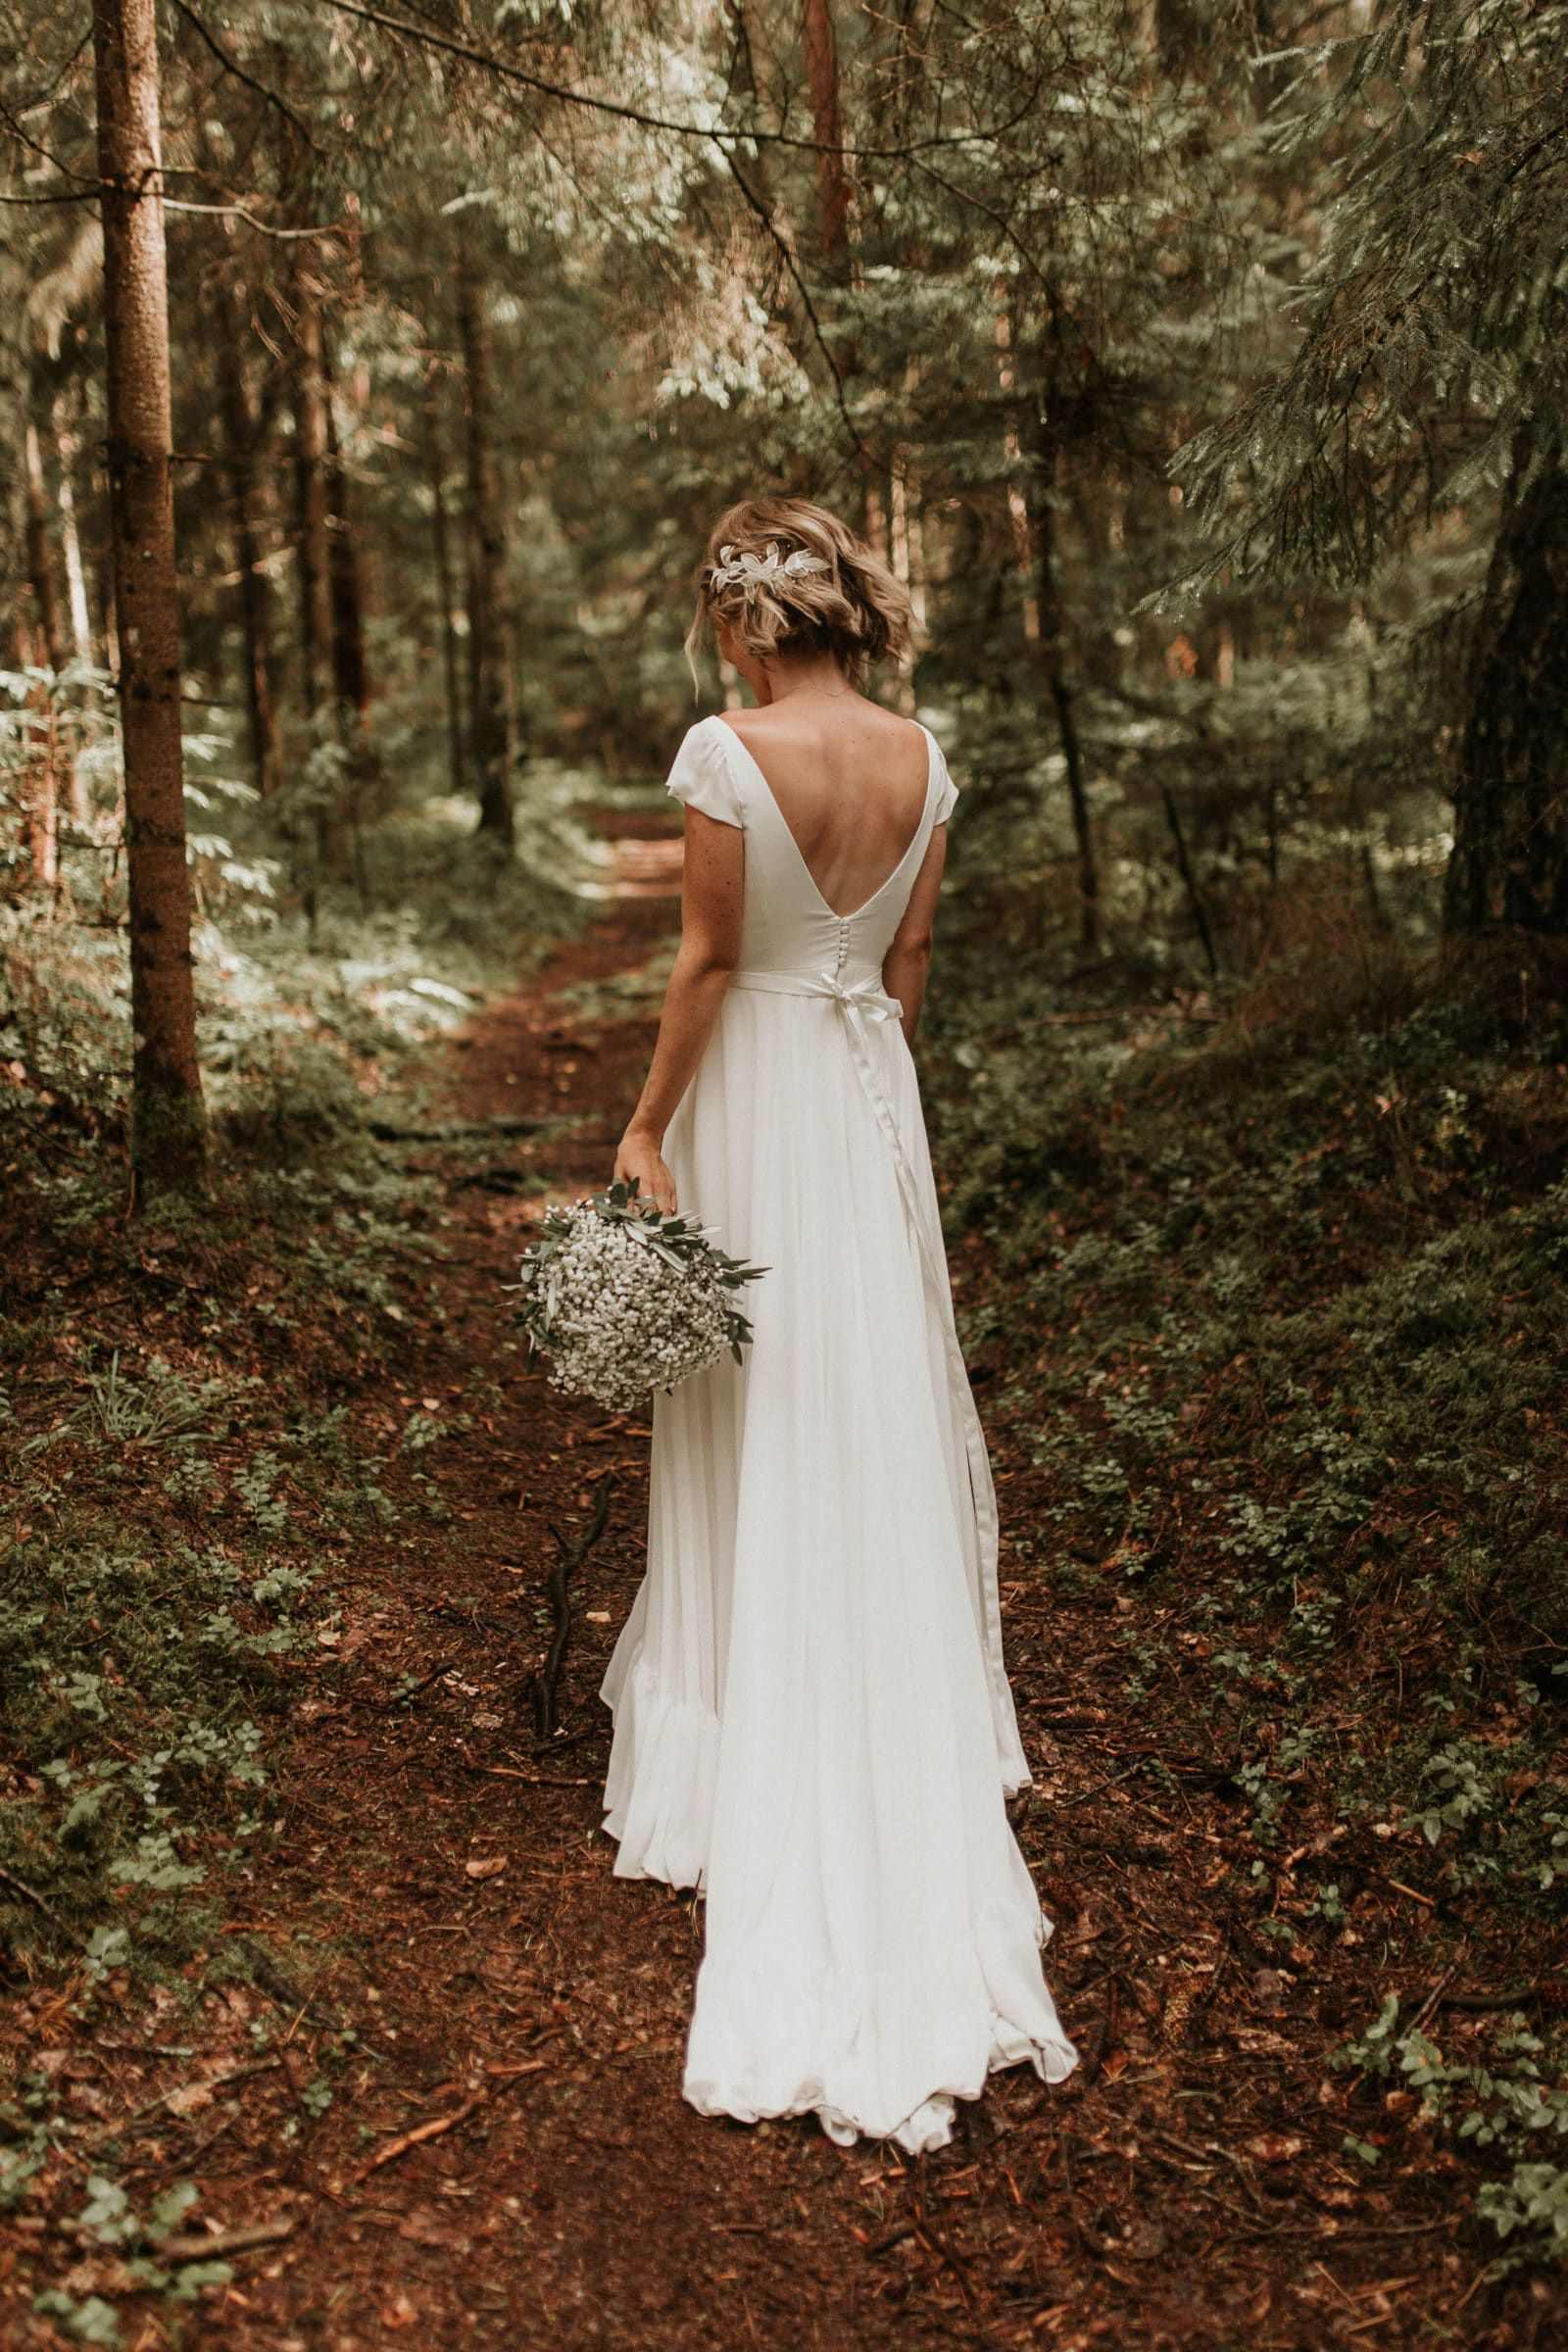 Soft And Daring Natural Looks For Brides Bohemian Style Wedding Dresses Forest Wedding Dress Dream Wedding Dresses [ 2400 x 1600 Pixel ]